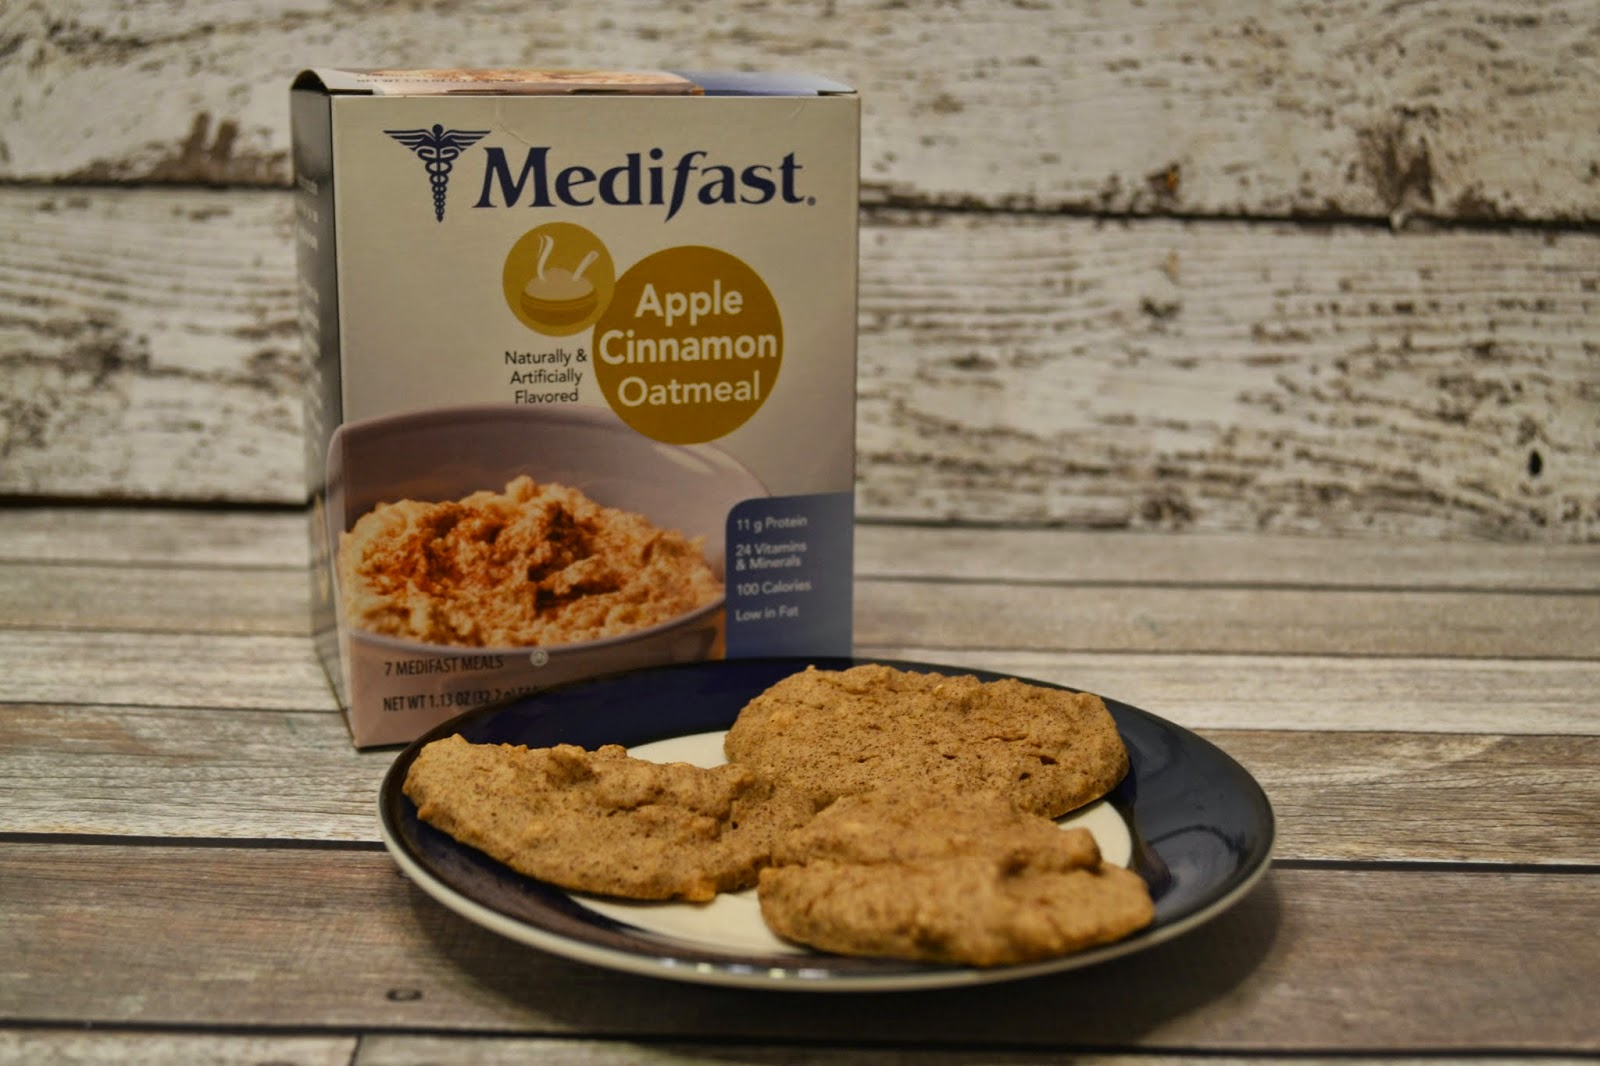 Apple Cinnamon Oatmeal Cookie #Recipe - Medifast - Week 9.  Medifast Recipes.  Medifast Diet.  5-1 meal plan.  Medifast.  Weight Loss plans.  Medifast Oatmeal.  Recipe for Medifast Oatmeal.